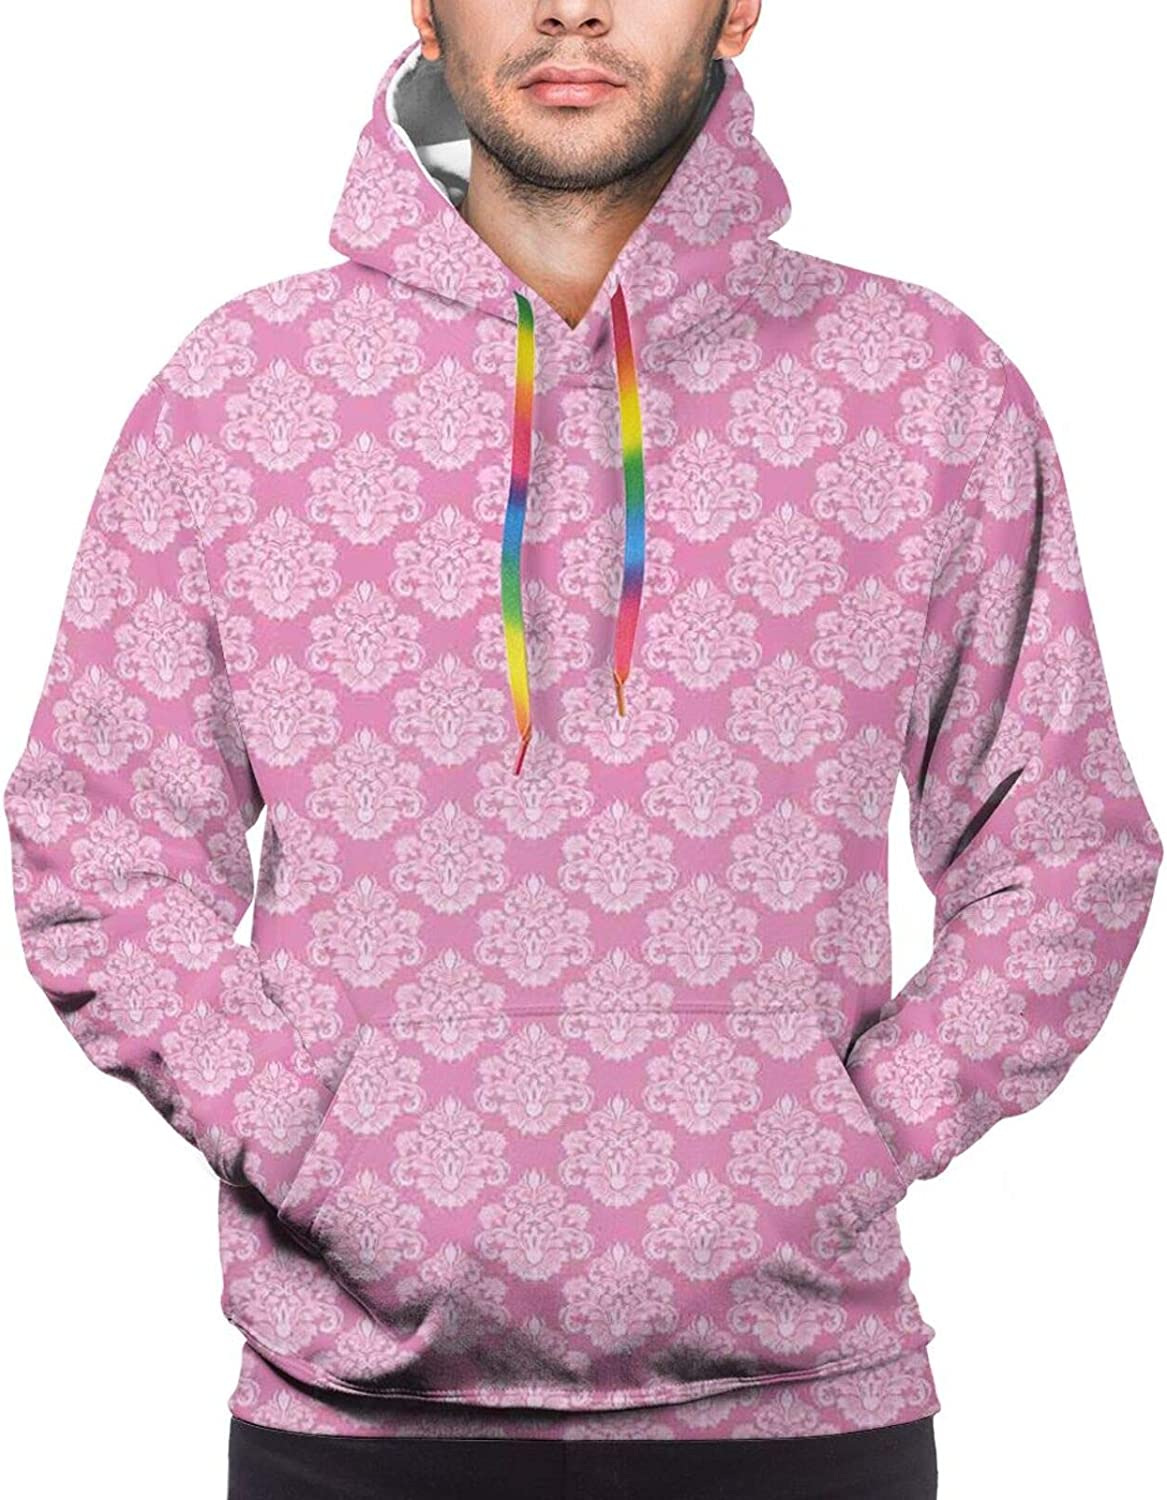 Men's Hoodies Sweatshirts,Intertwining Roads with Cars On Them Complicated Design with Urban Life Theme